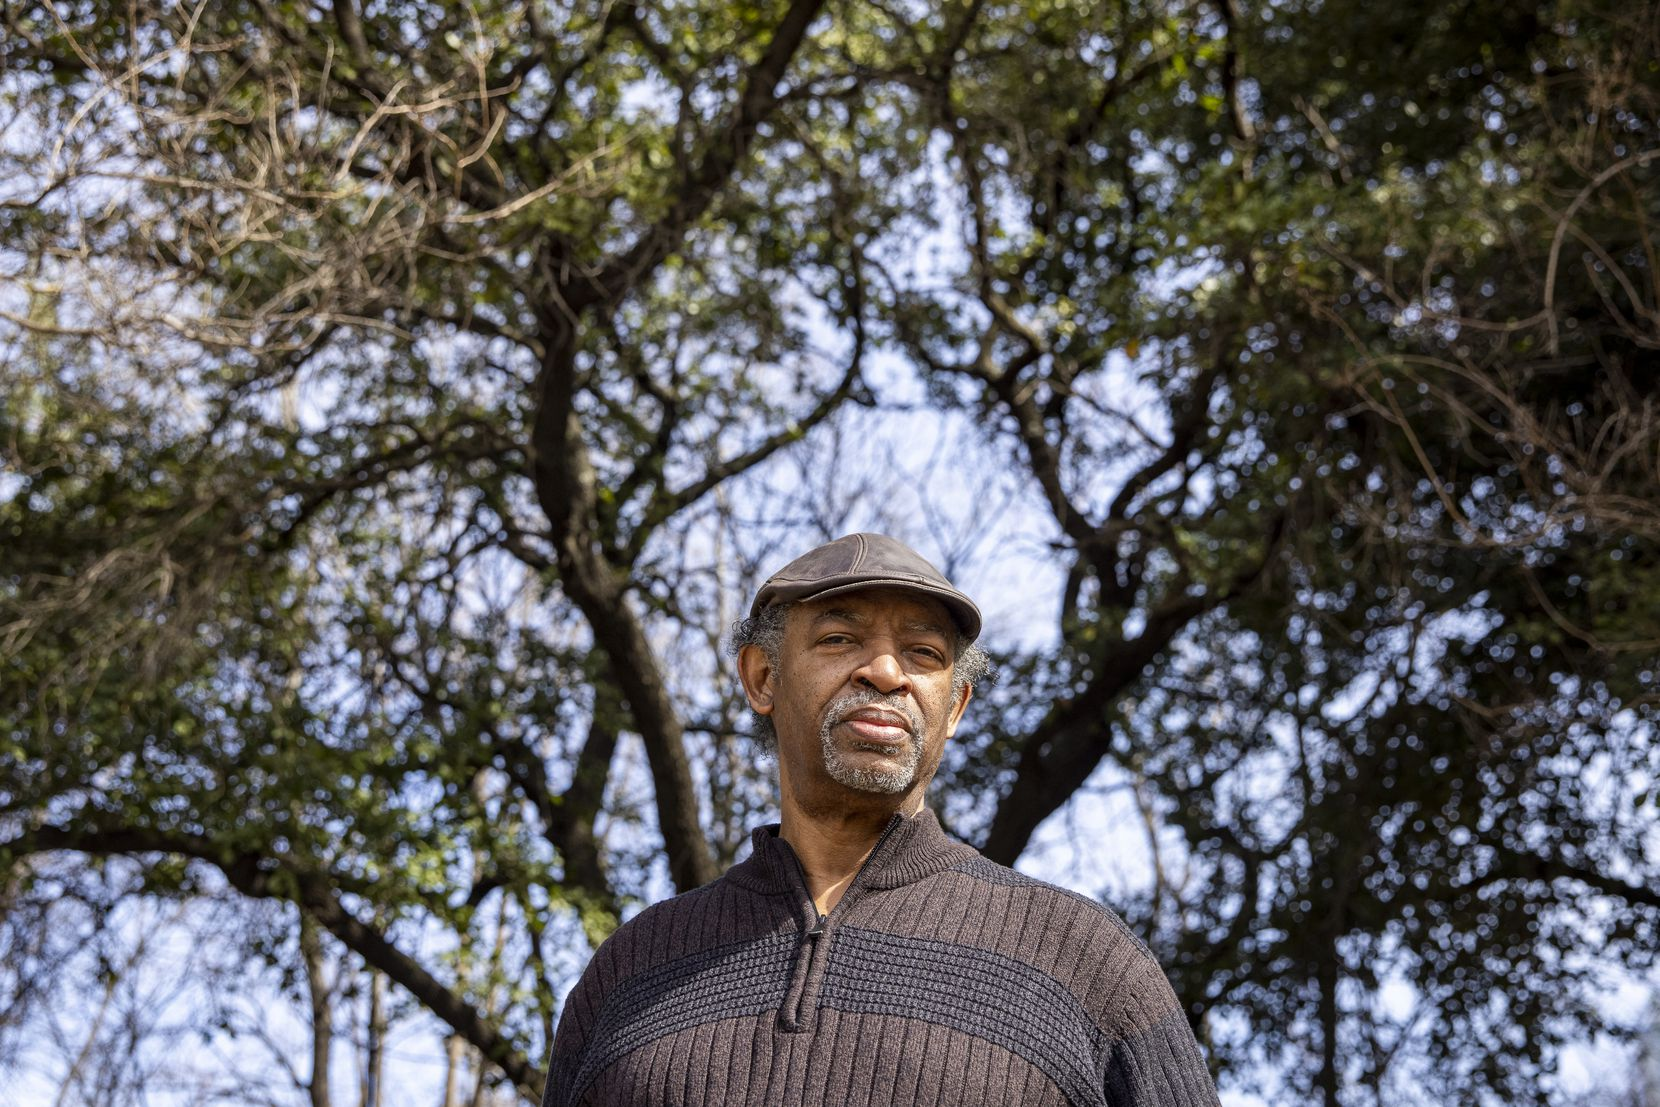 Dr. George Keaton, the head of Remembering Black Dallas, poses for a portrait at Martyr's Park in downtown Dallas on Wednesday, Feb. 3, 2021.